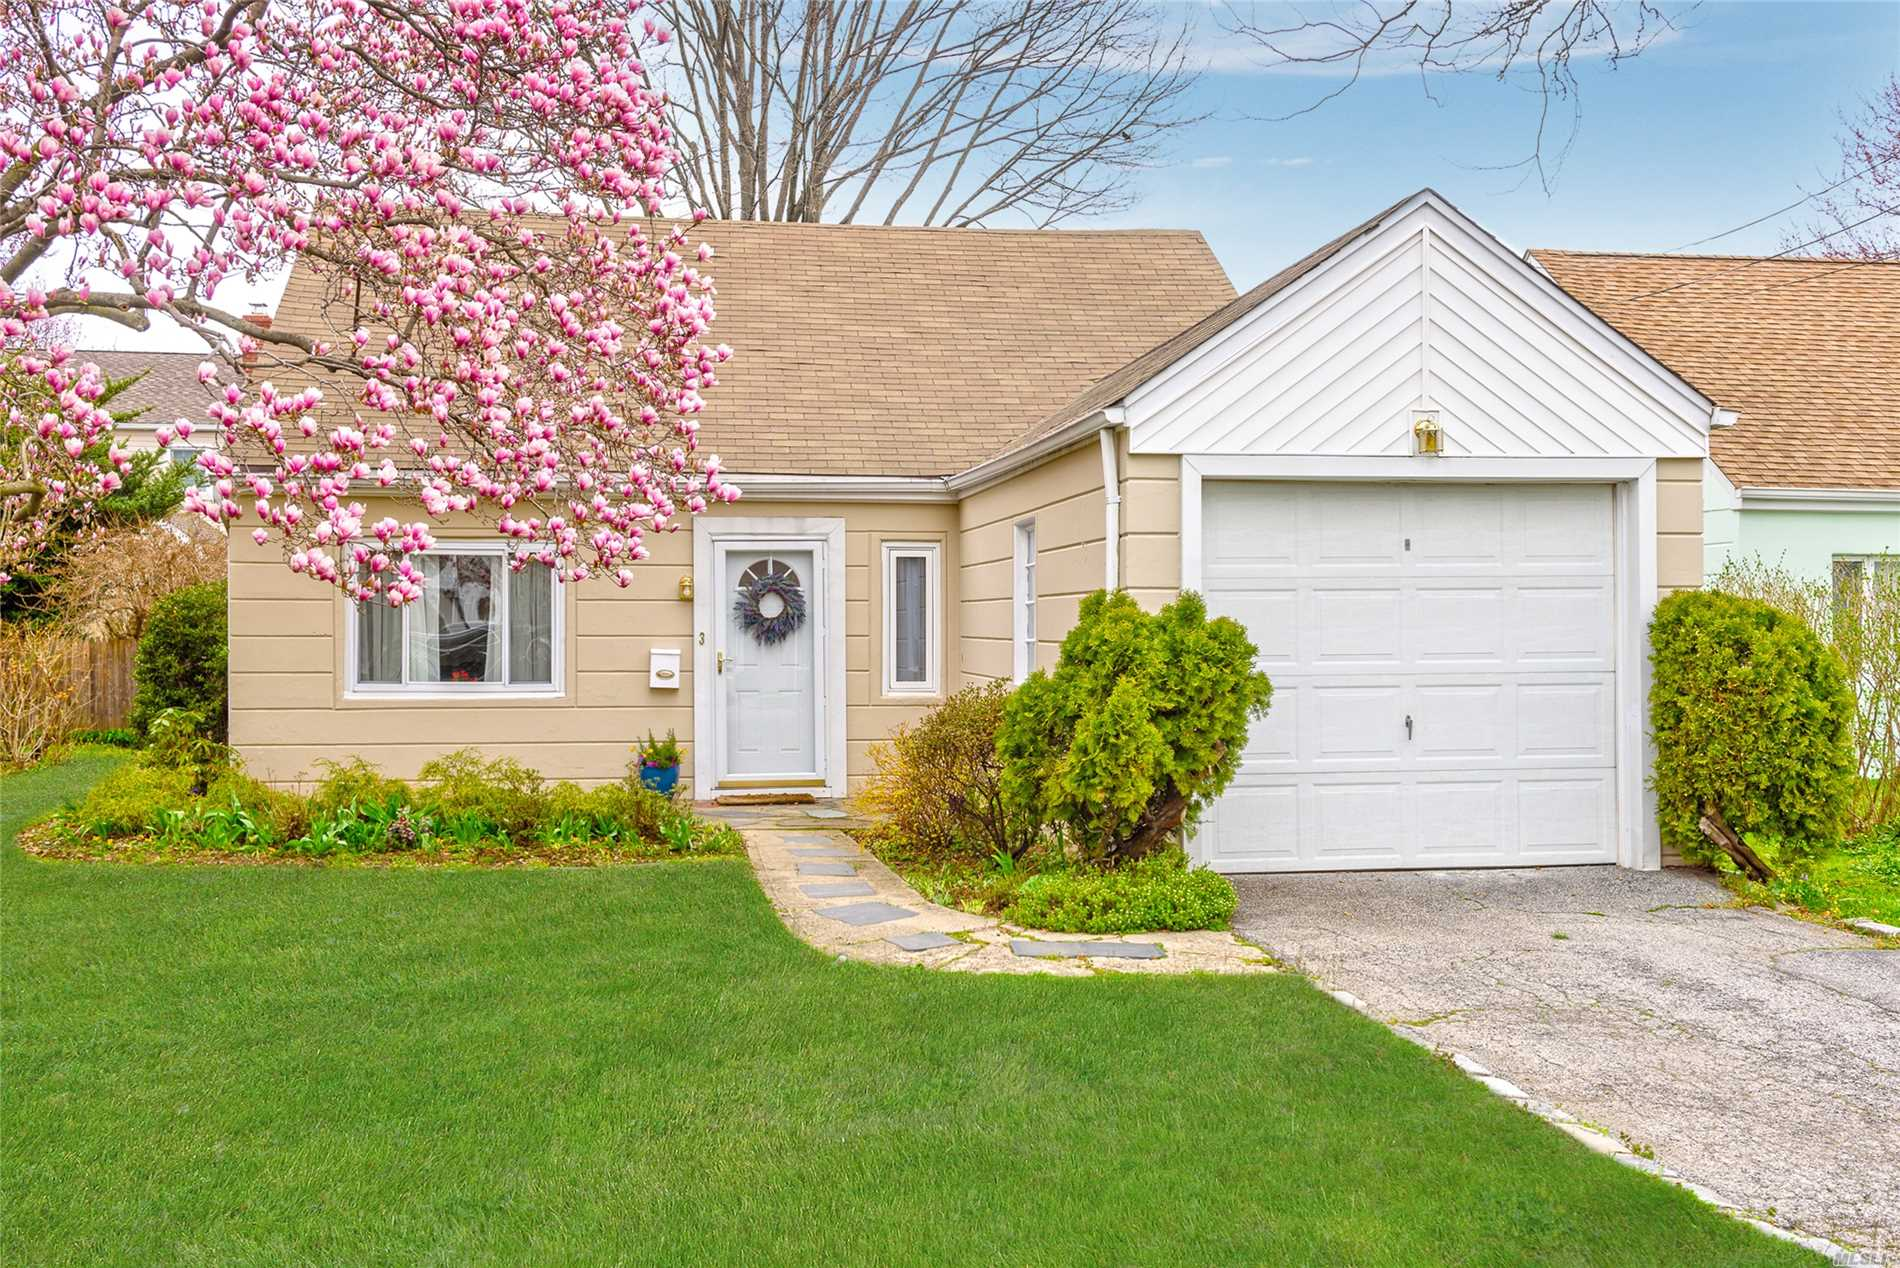 Charming four bedroom two bath cape in the heart of Manhasset Isle. Beach rights through Manhasset Isle Civic Association. Renovated kitchen and baths. New washer/dryer. One car garage.